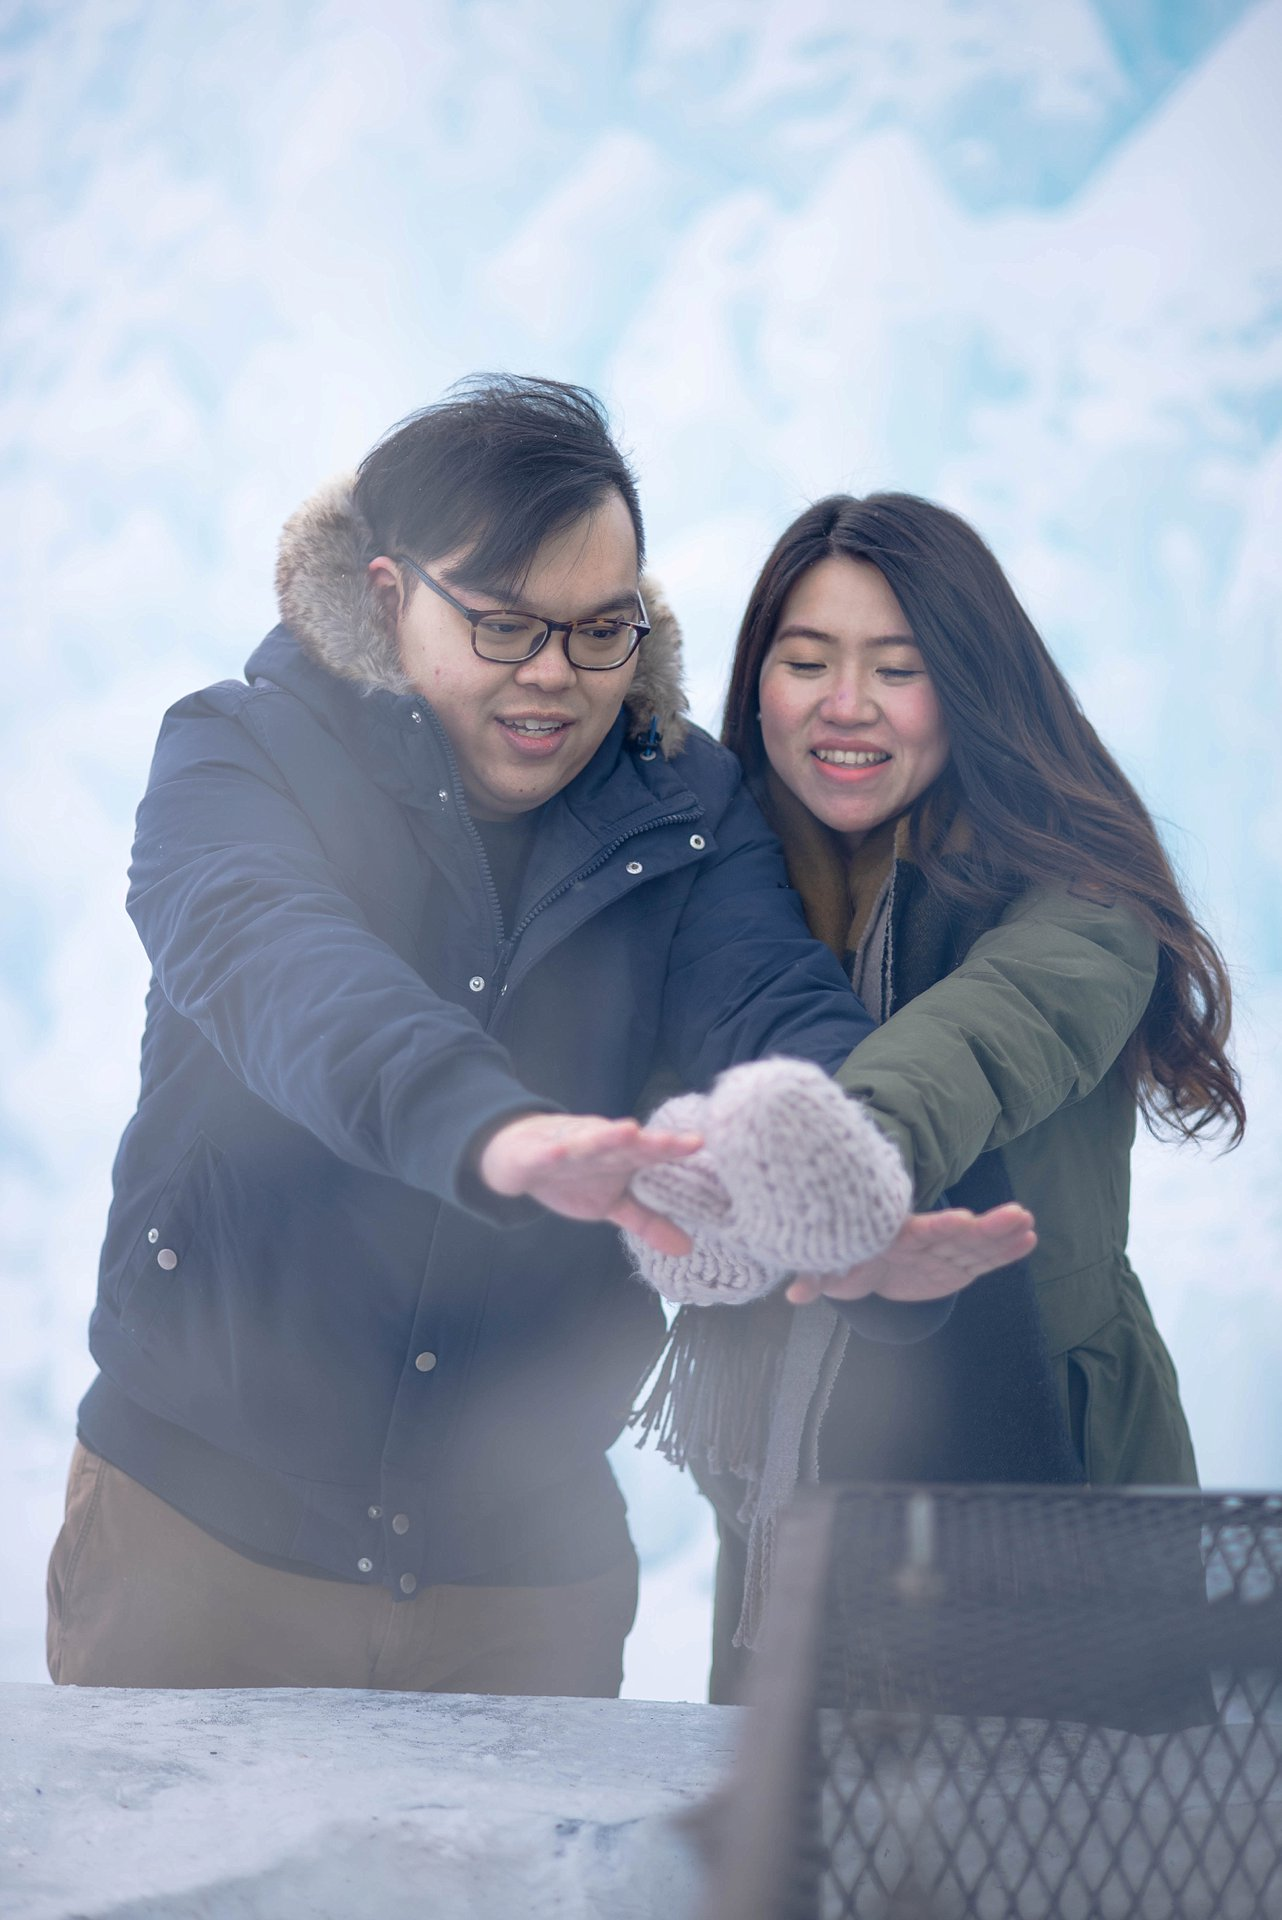 VJ-Ice-castles-engagement-photography_0001